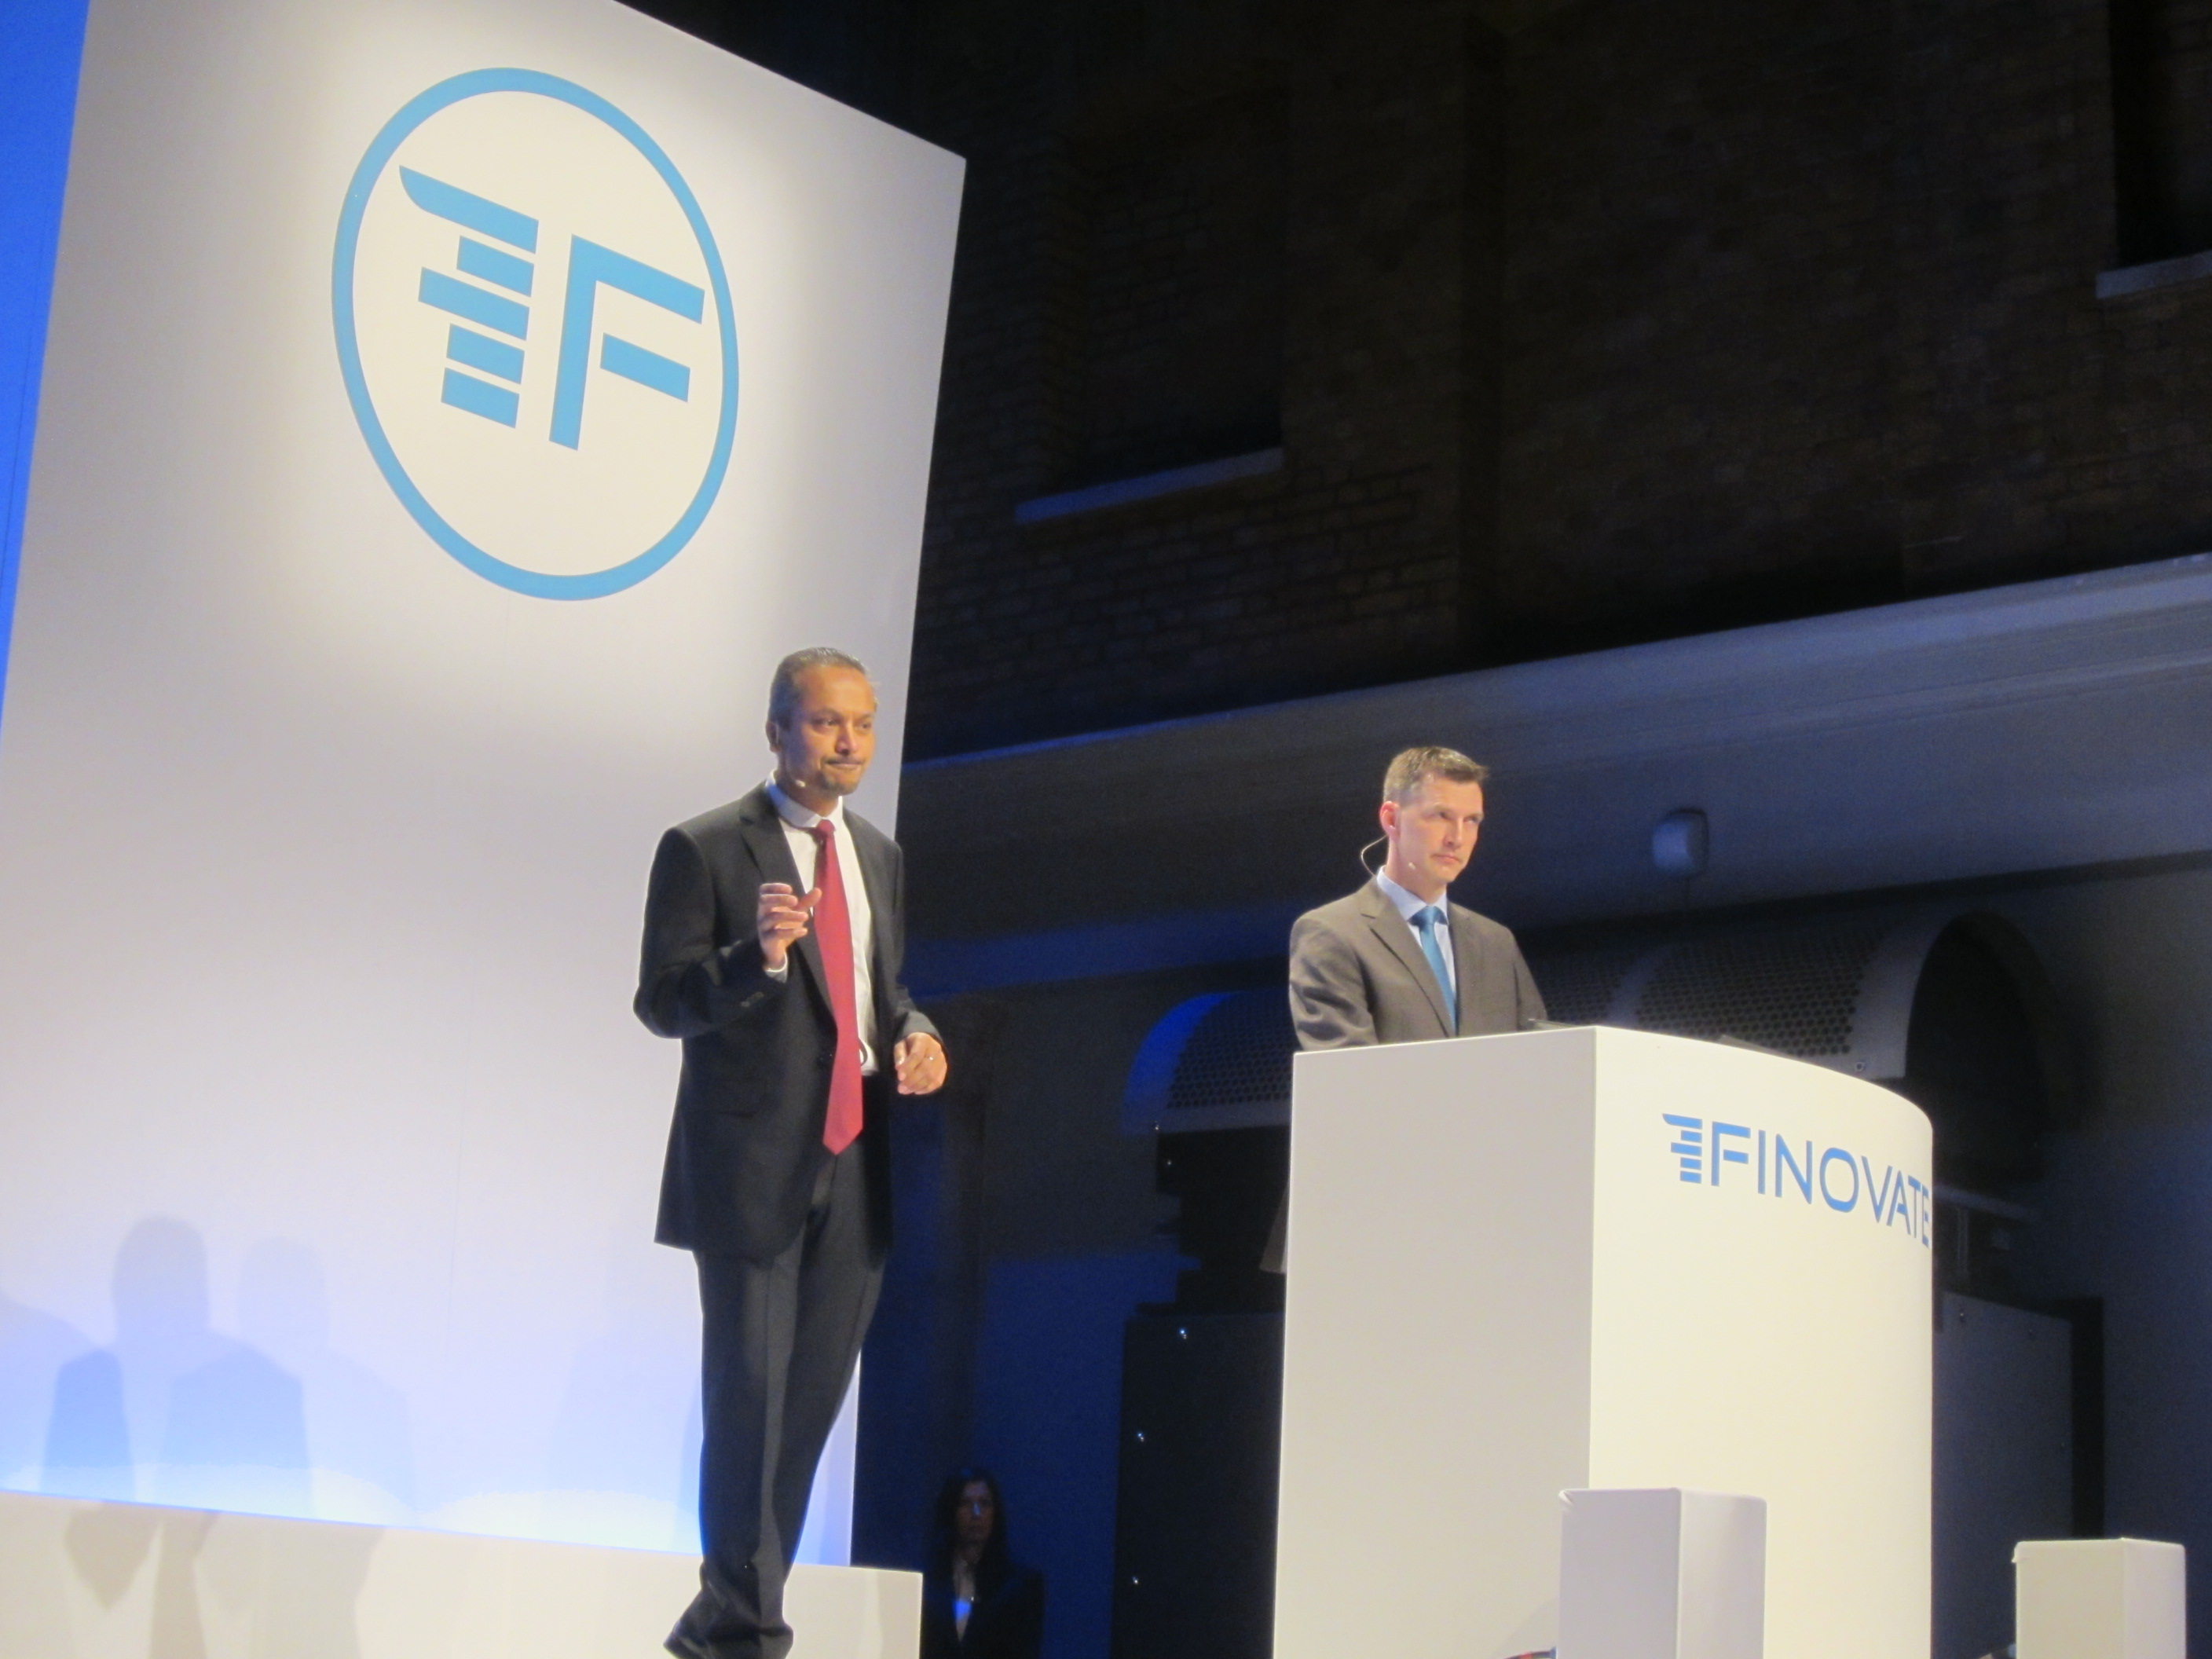 Telliant Systems Attends Finovate, the Latest News from the show!